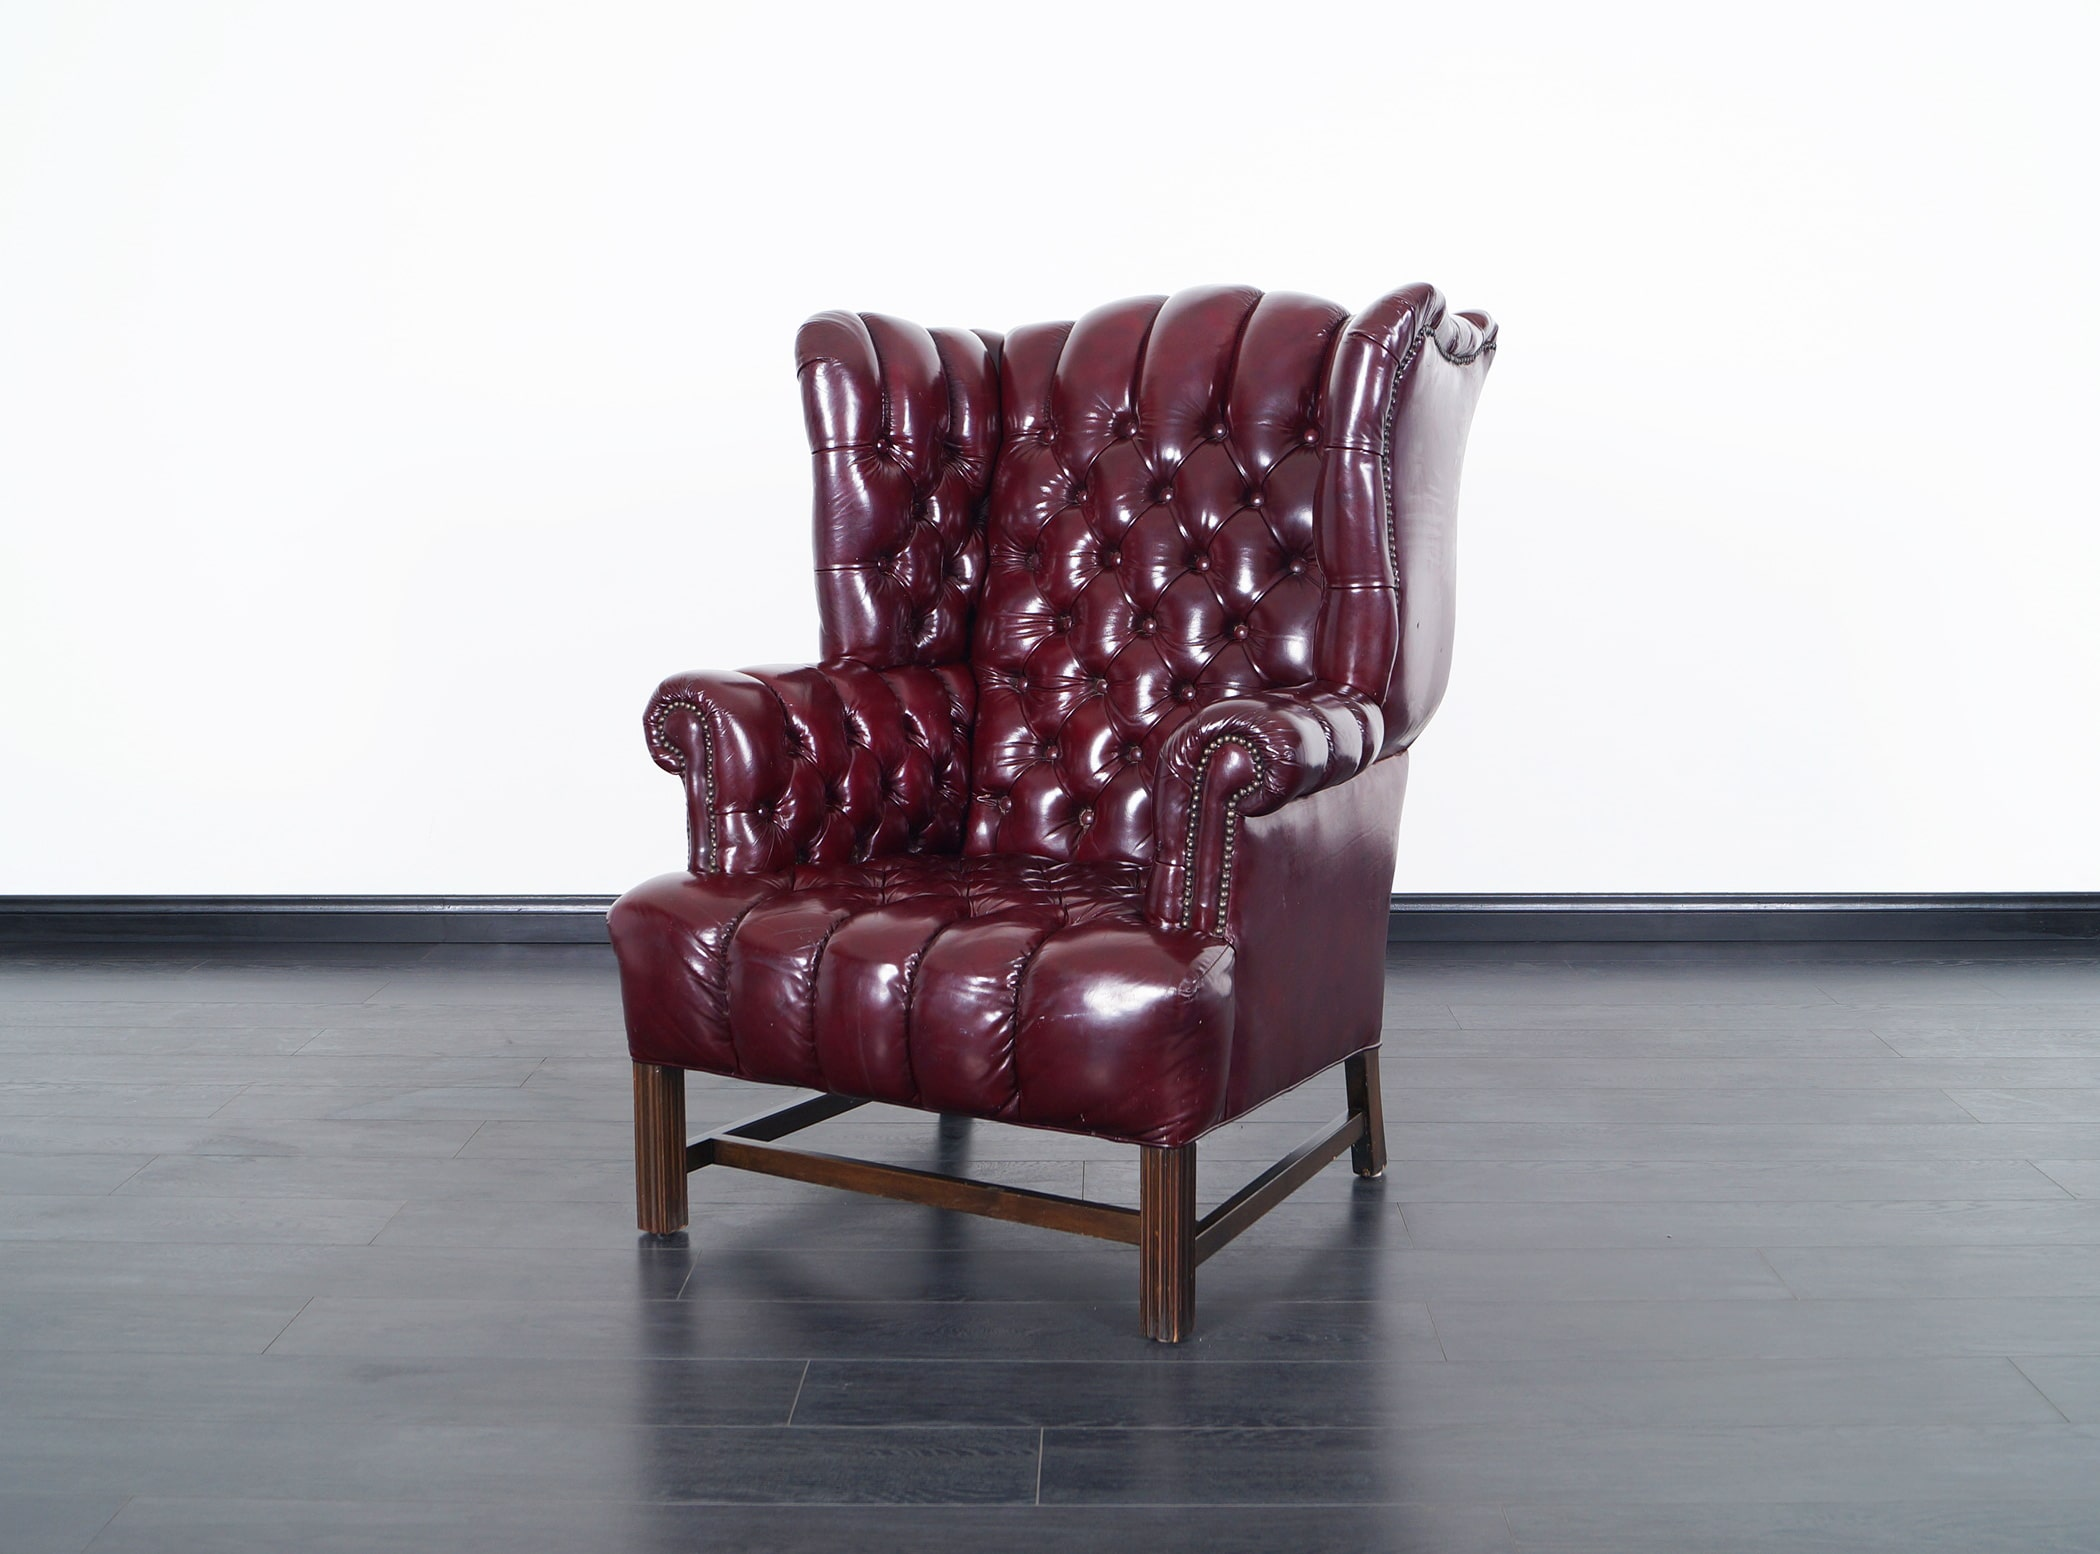 Vintage Leather Tufted Wingback Chairs